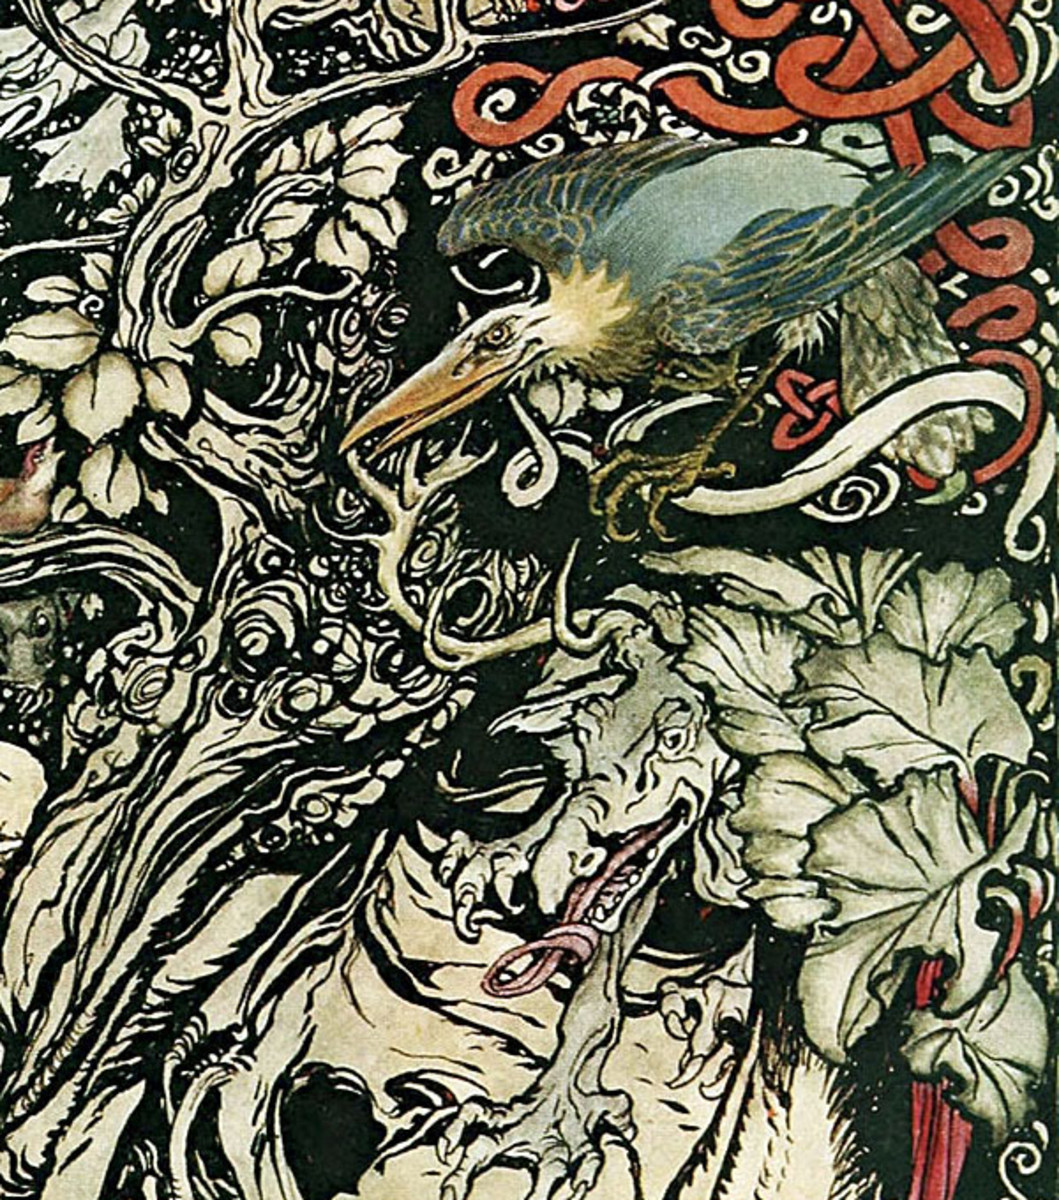 "Here we show a portion of 'Wild and shy and monstrous creatures ranged in her plains and forests' - a design by Arthur Rackham from his suite published in ""Irish Fairy Tales"" (1920)."